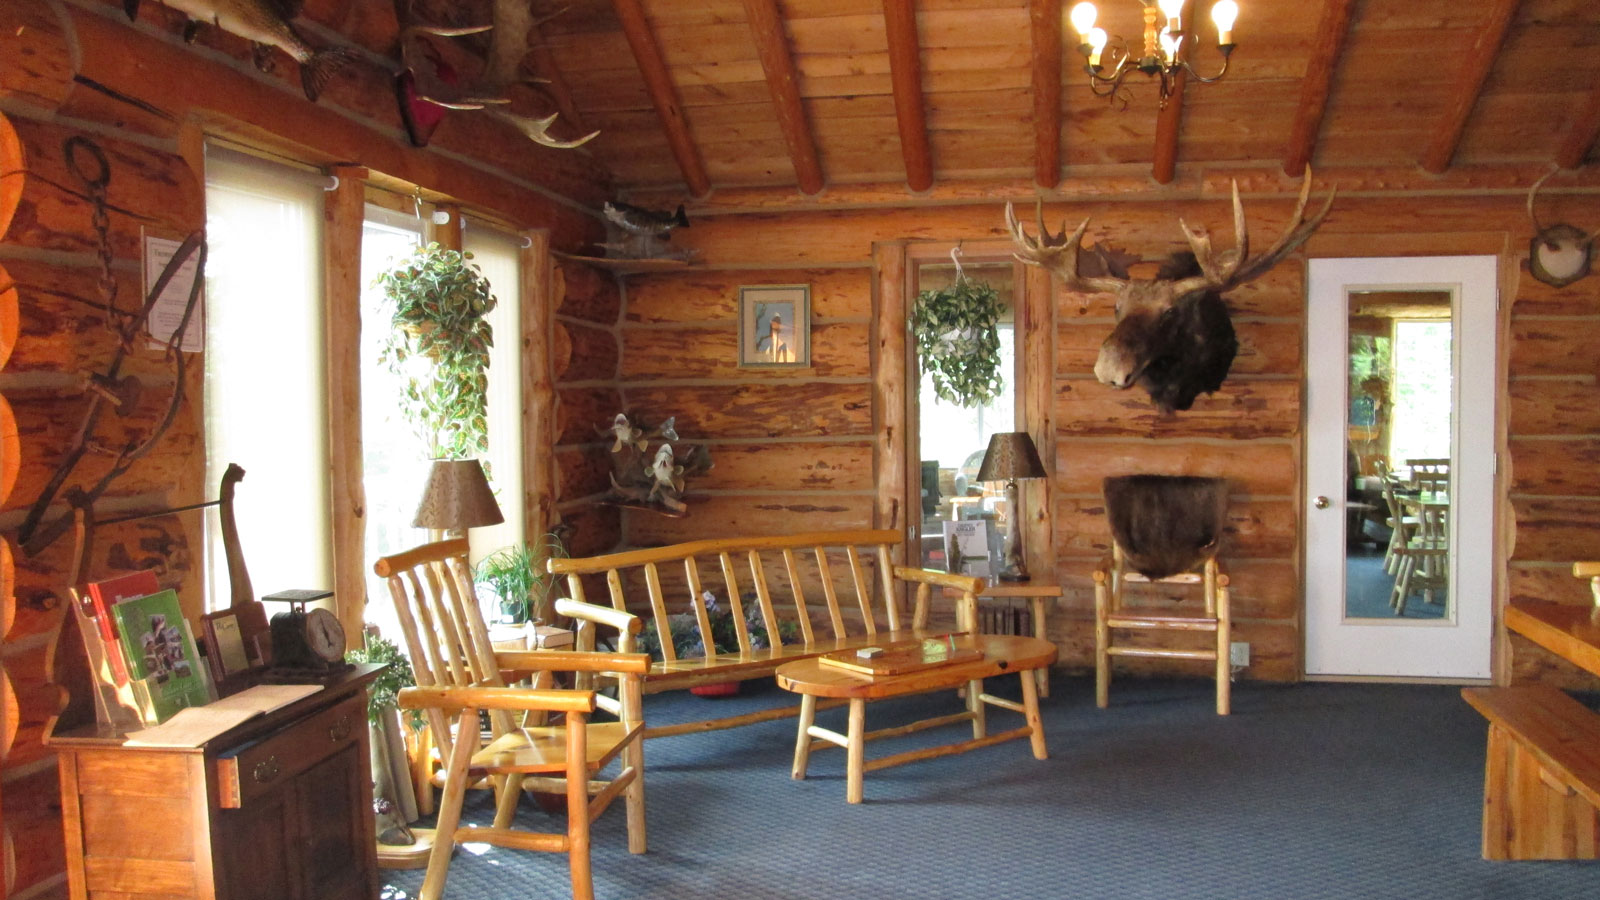 Inside the Lodge at Kettle Falls.